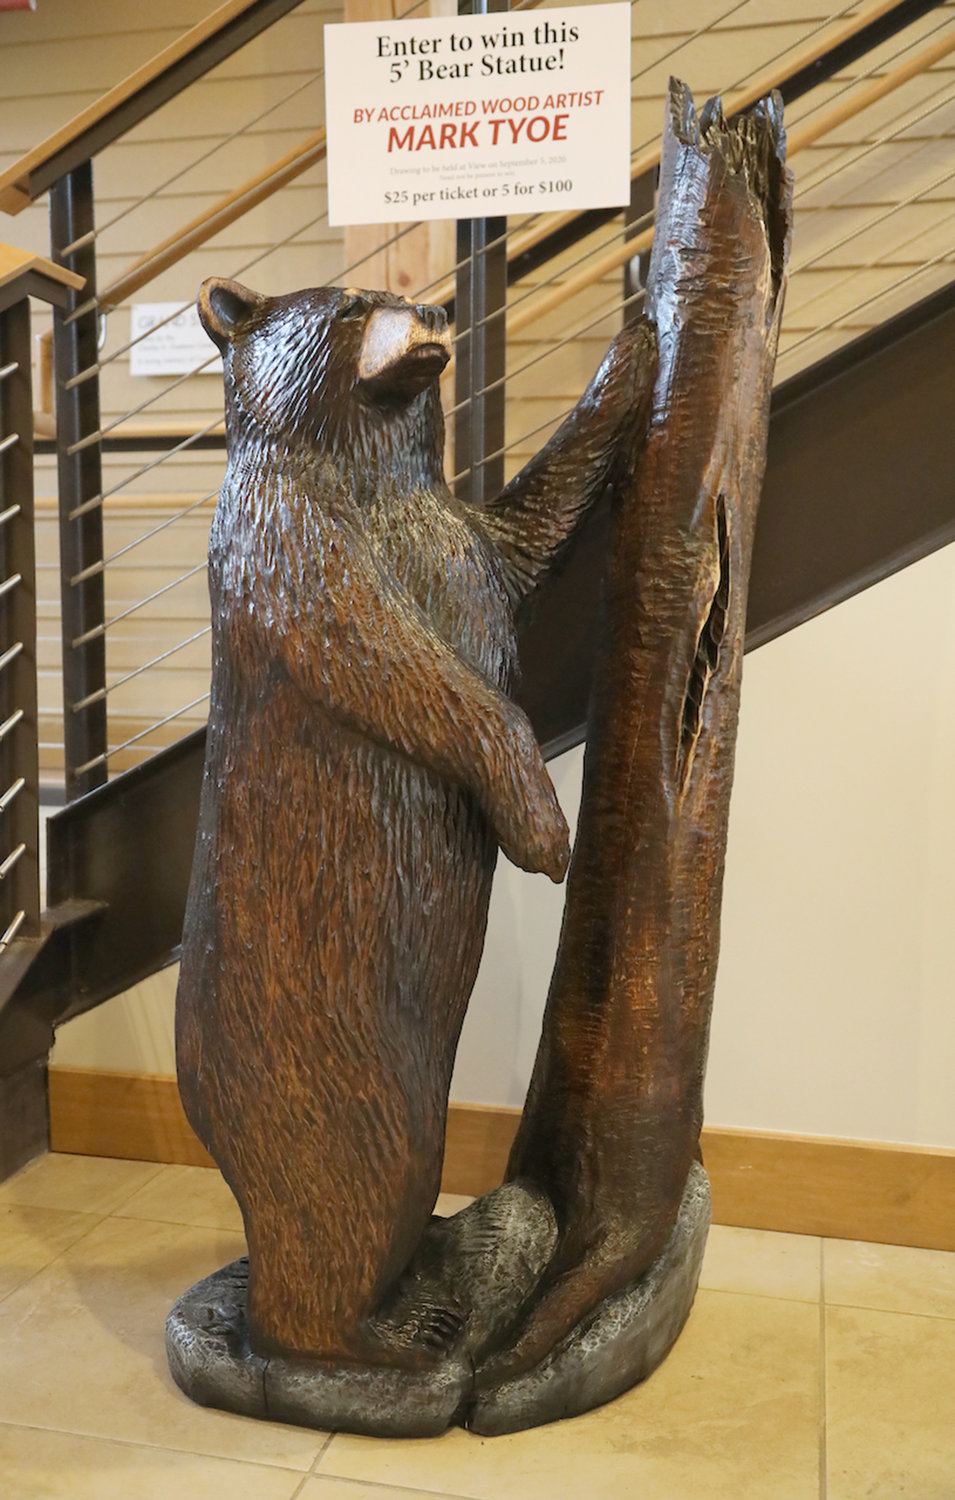 OLD FORGE CLASSIC — Carved bear by chainsaw carver Mark Tyoe